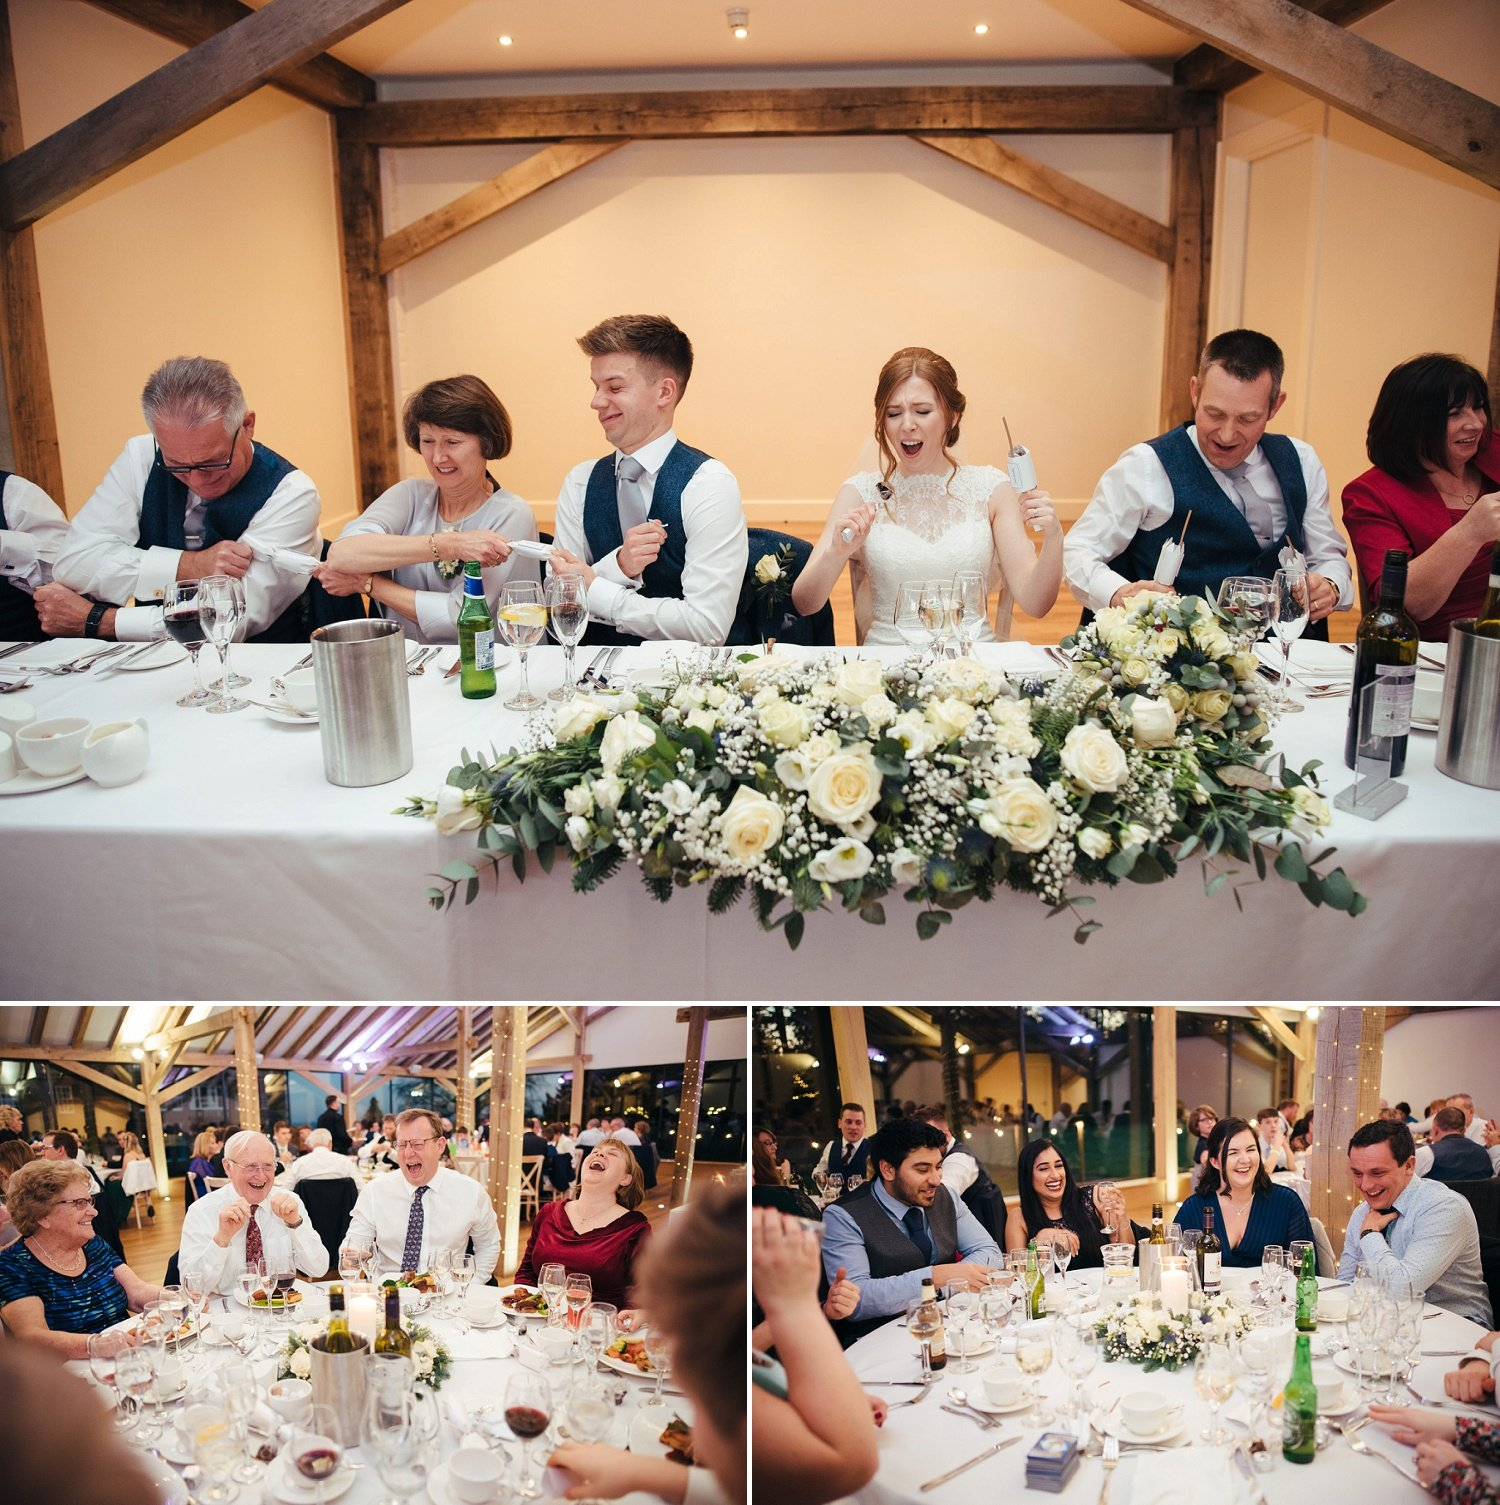 Crackers are pulled with a bang by the top table at a late December wedding at Bredenbury Court Barns